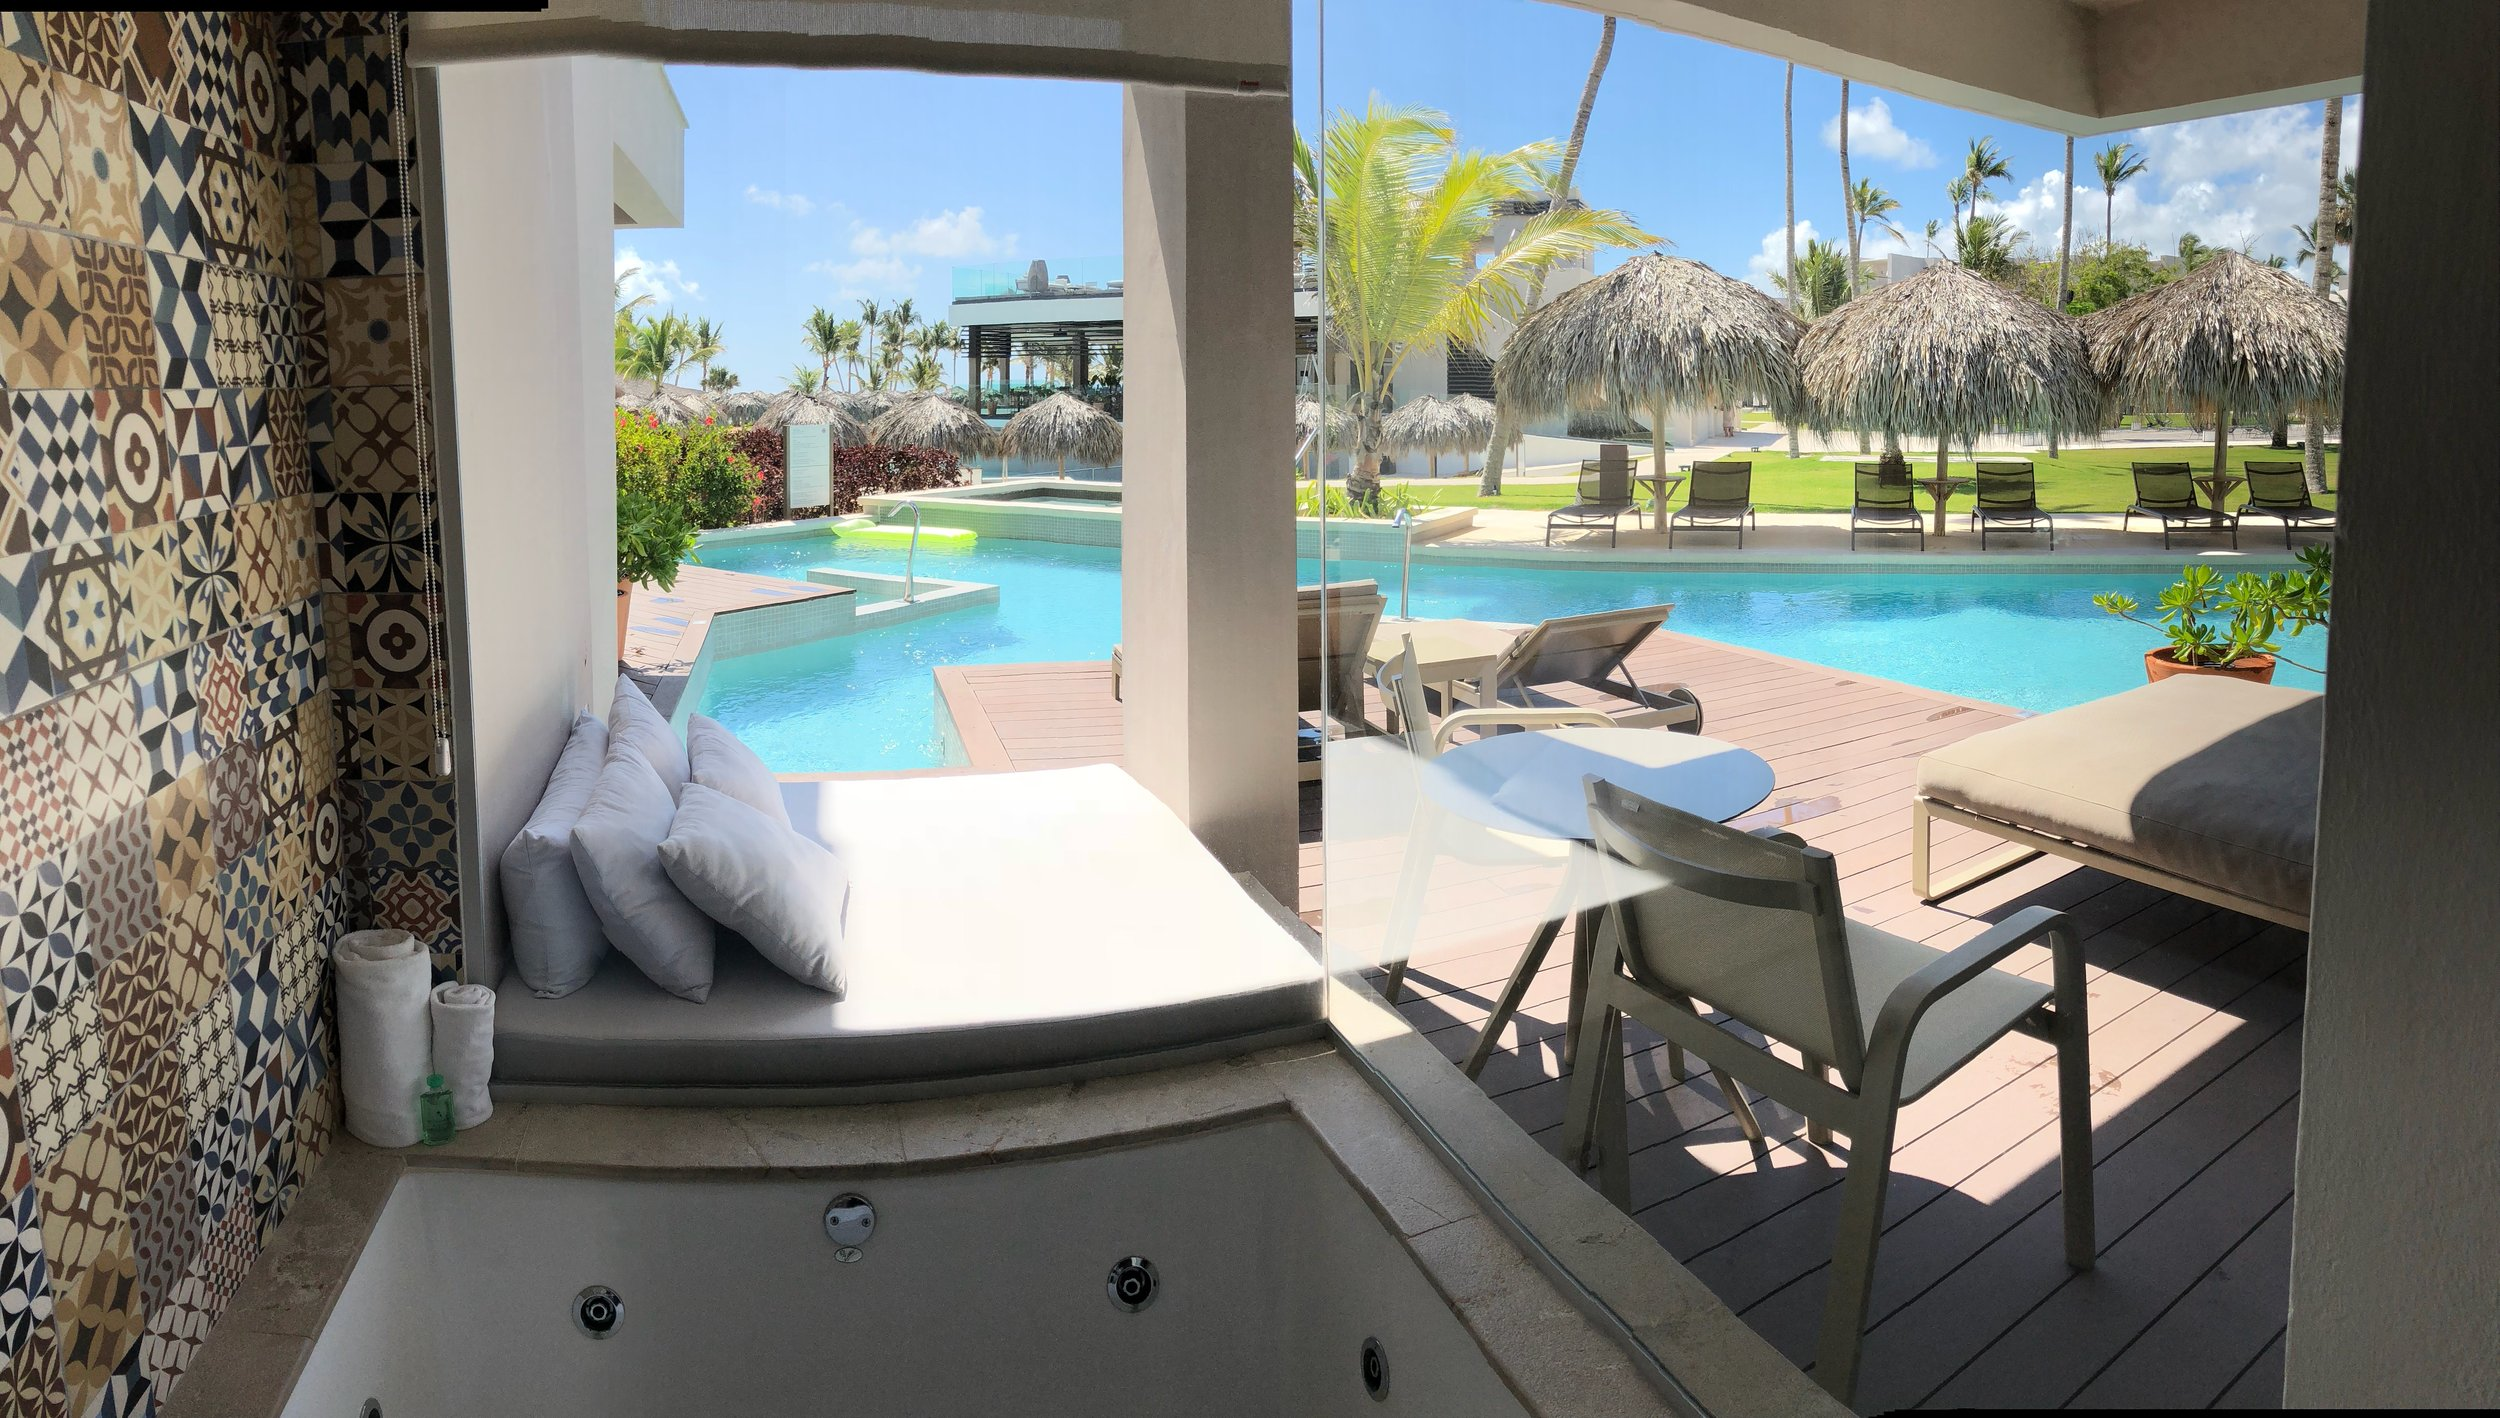 Room Type: Junior Swim up Suite with Deck  Jacuzzi is located on the patio for optimal viewing.